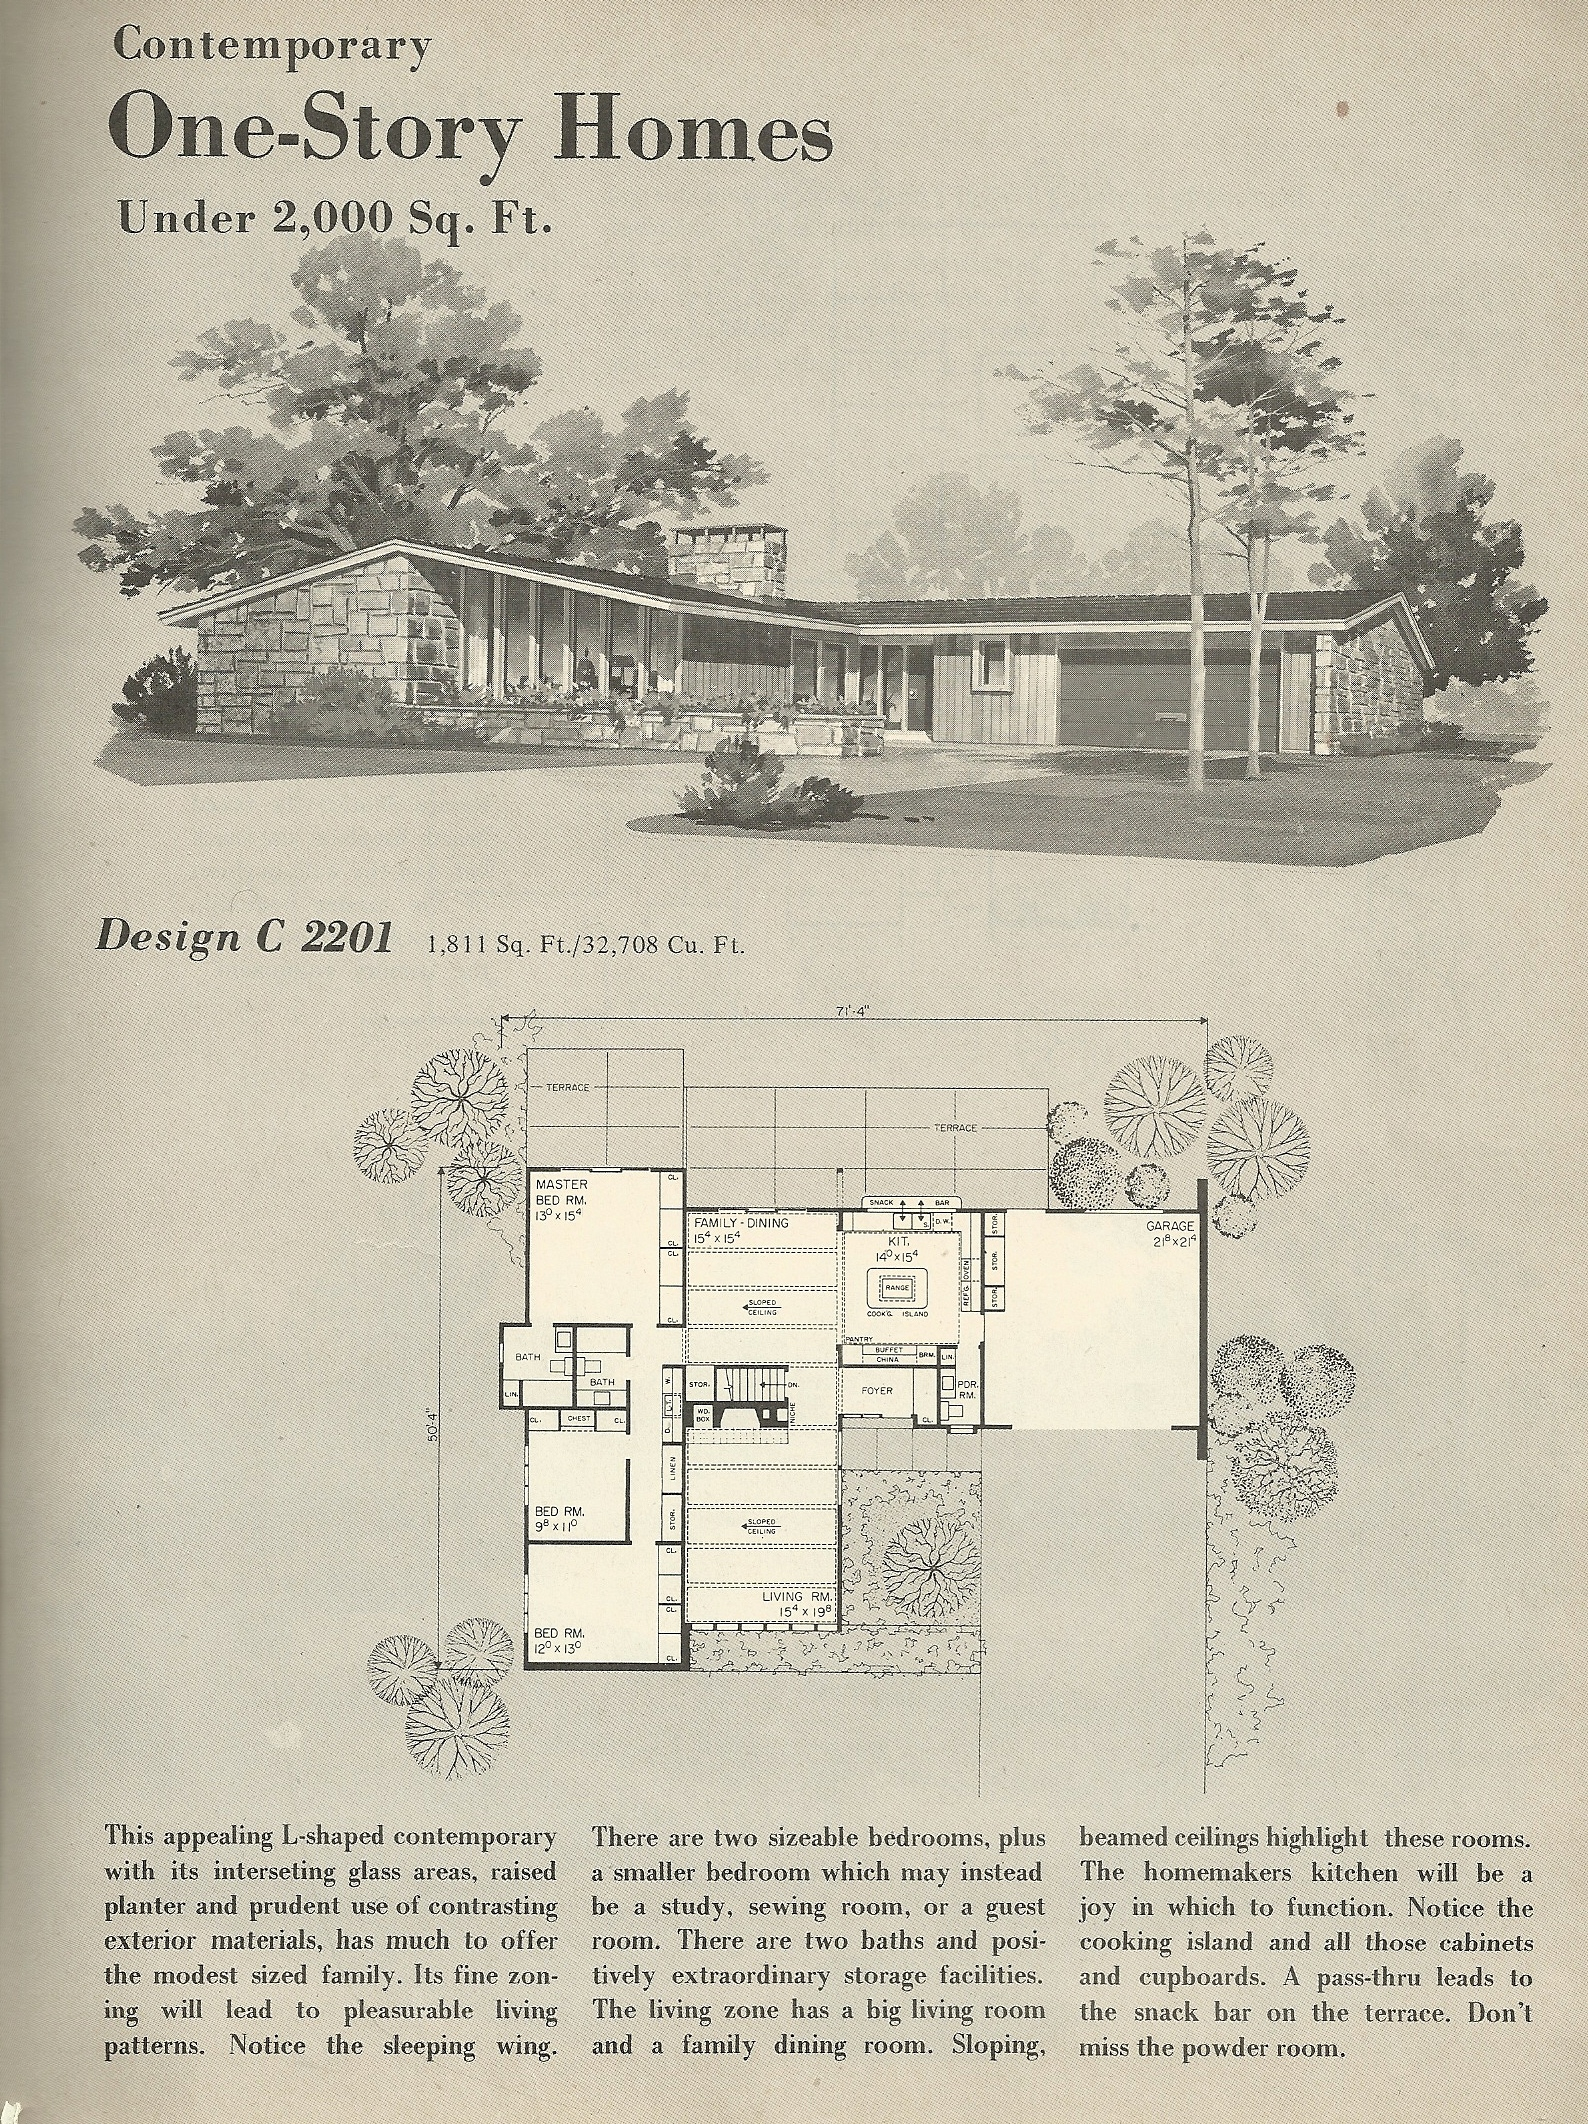 Vintage house plans 2201 antique alter ego Vintage home architecture